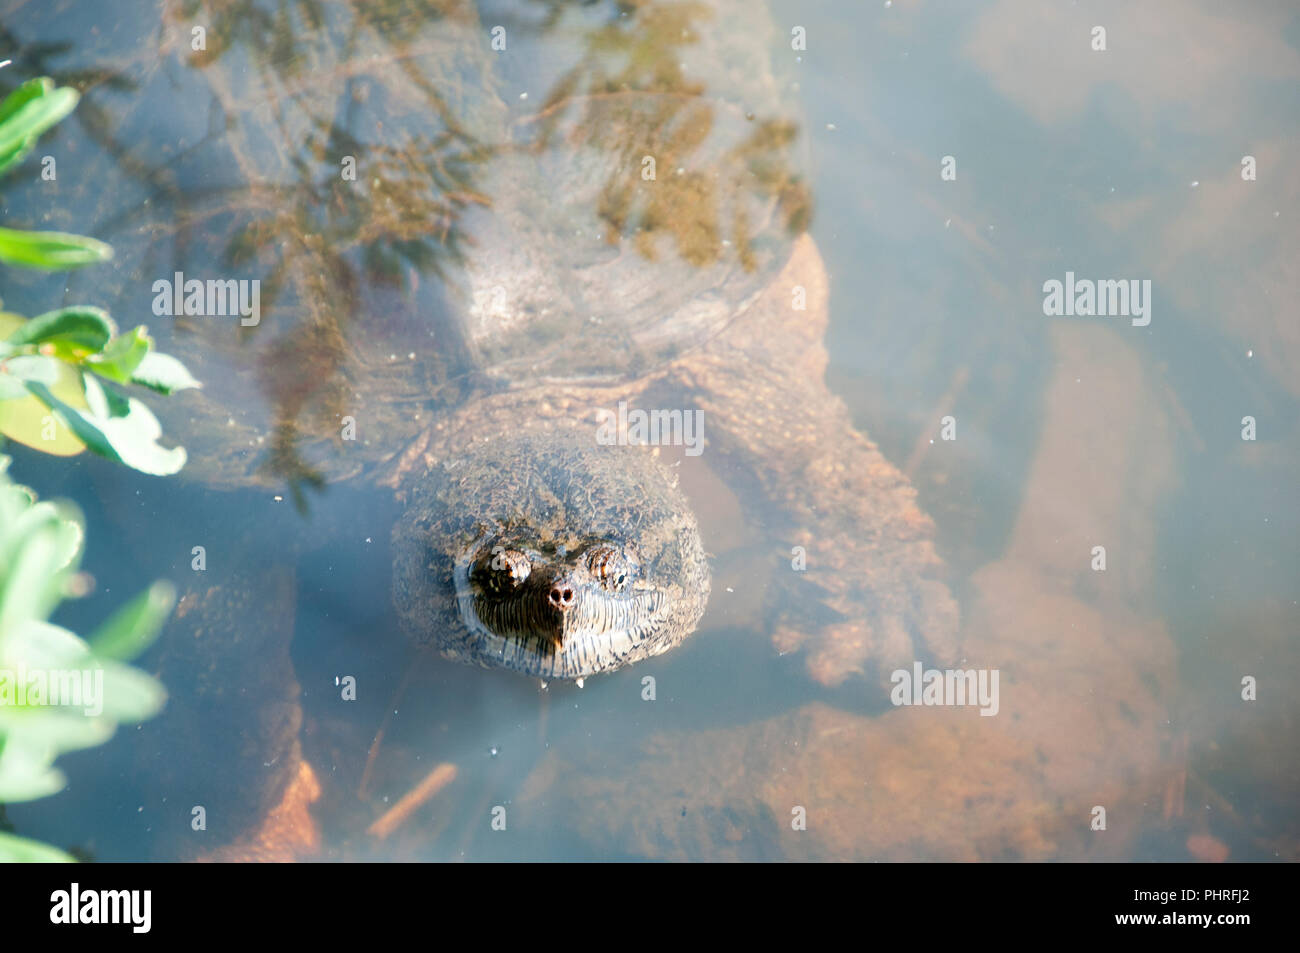 Snapping turtle in its environment. Stock Photo